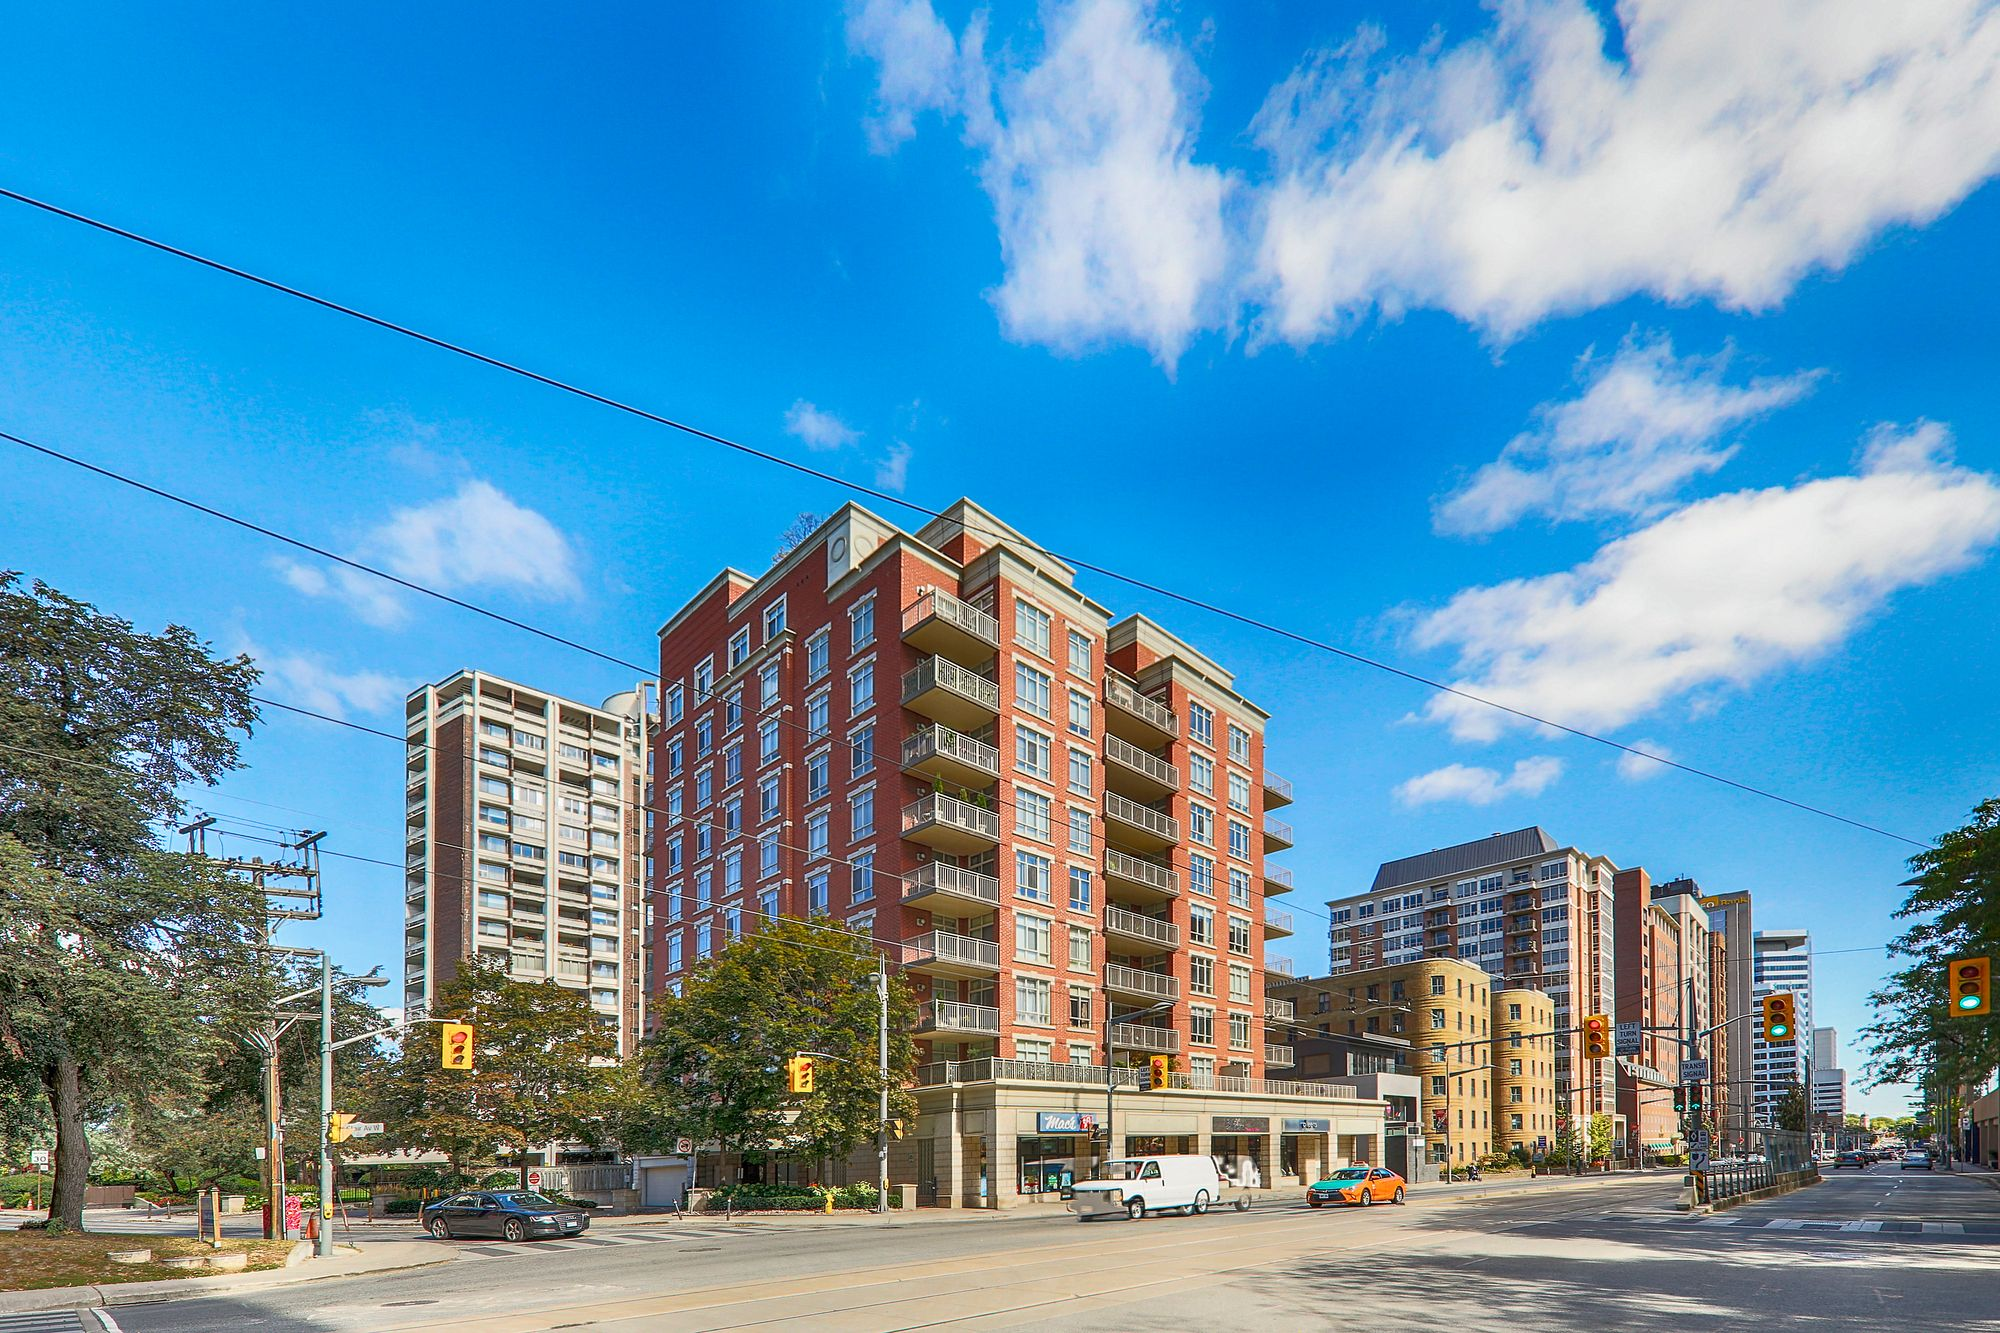 1 Deer Park Cres. This condo at Deer Park Residences is located in  Midtown, Toronto - image #1 of 5 by Strata.ca